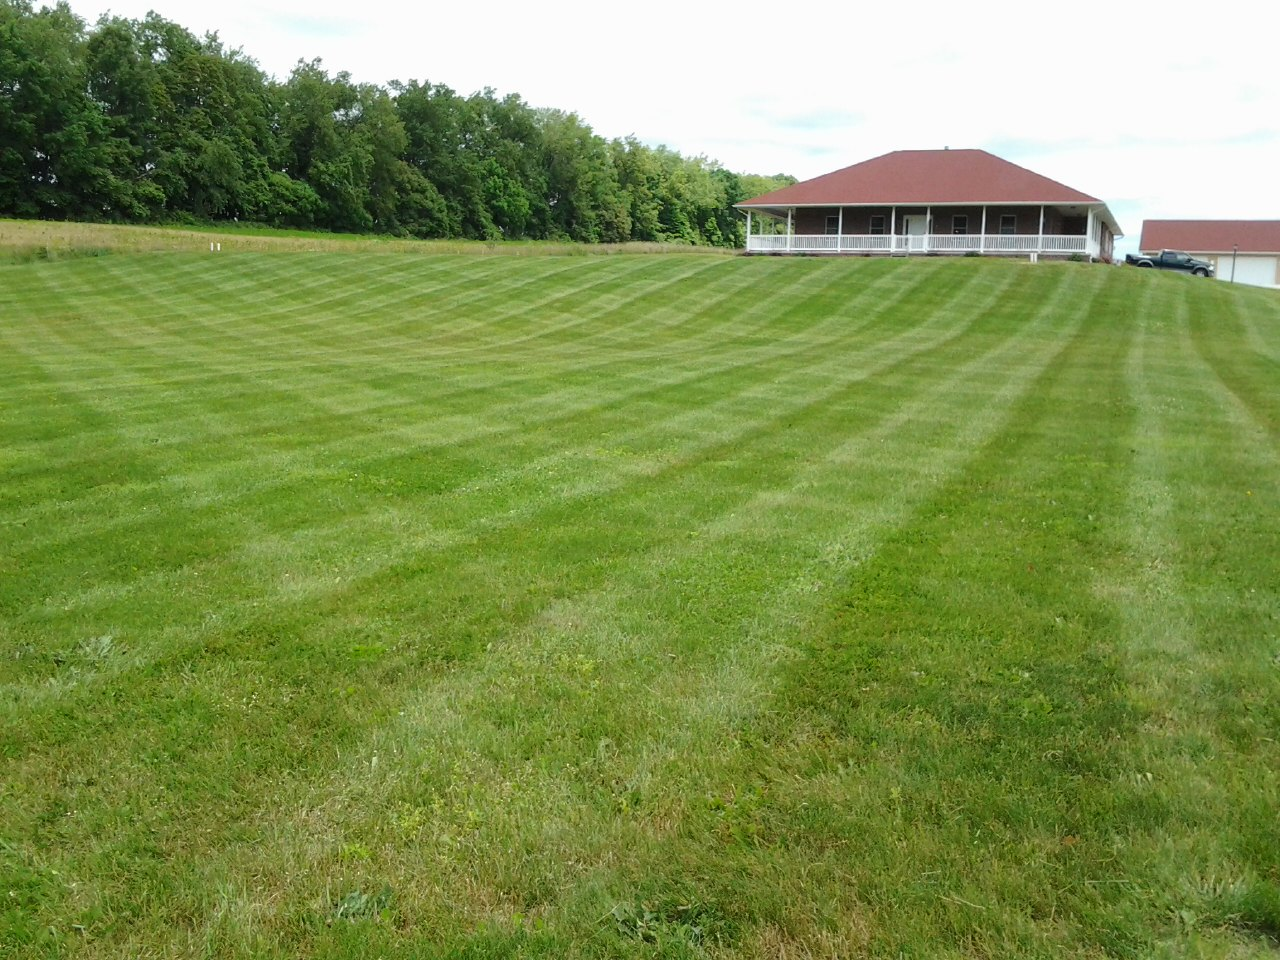 Mowing, Lawn Care, Landscaping, Mowing,